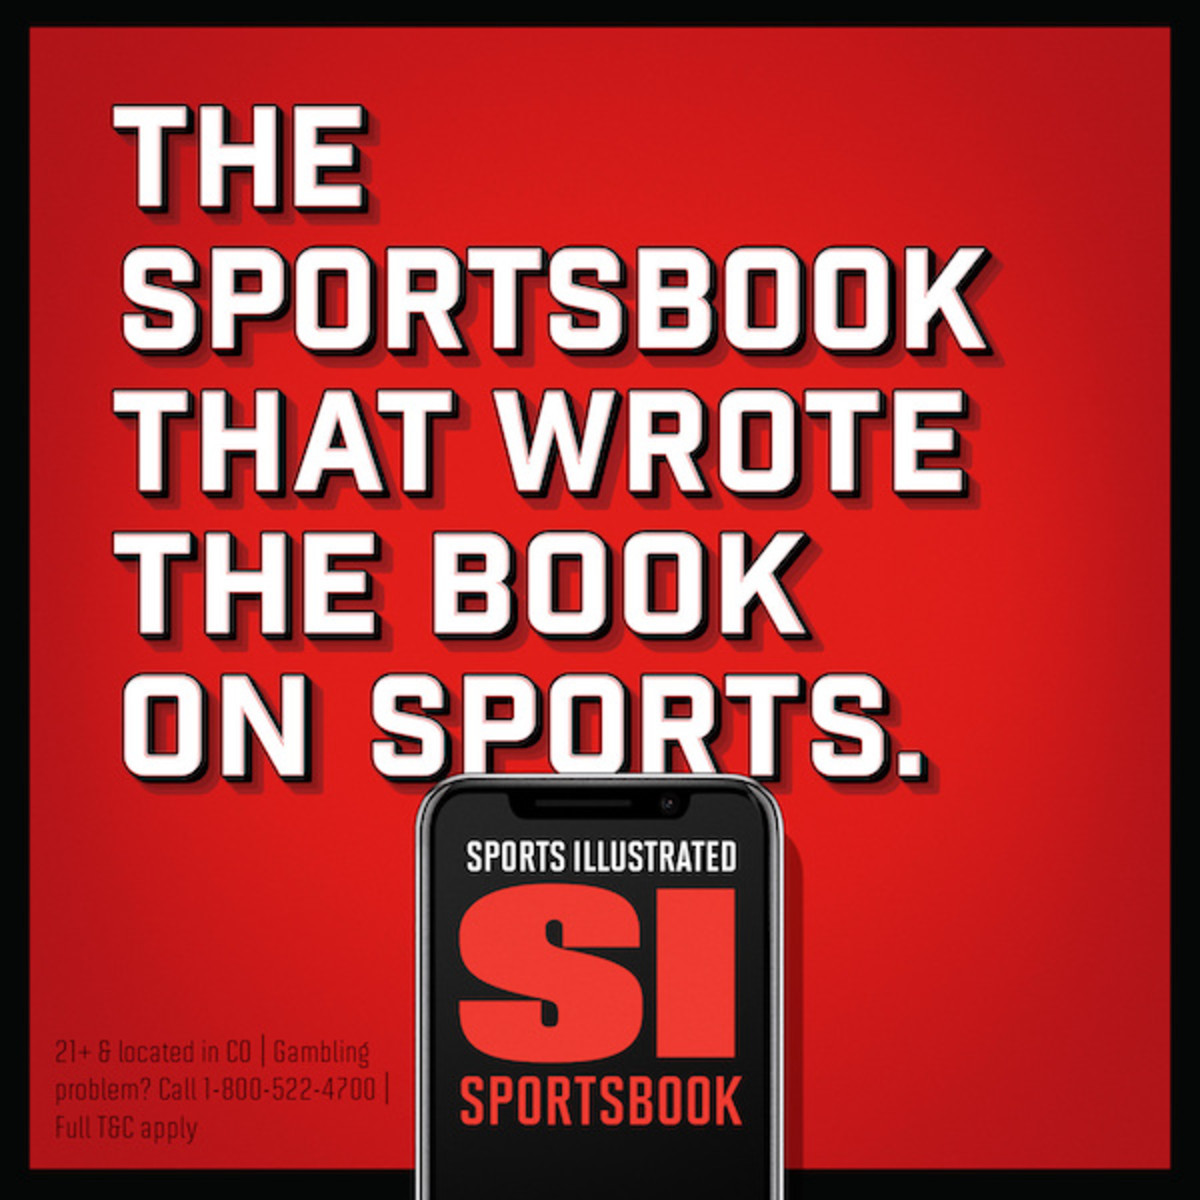 'Sports Illustrated' Sportsbook launches in Colorado.